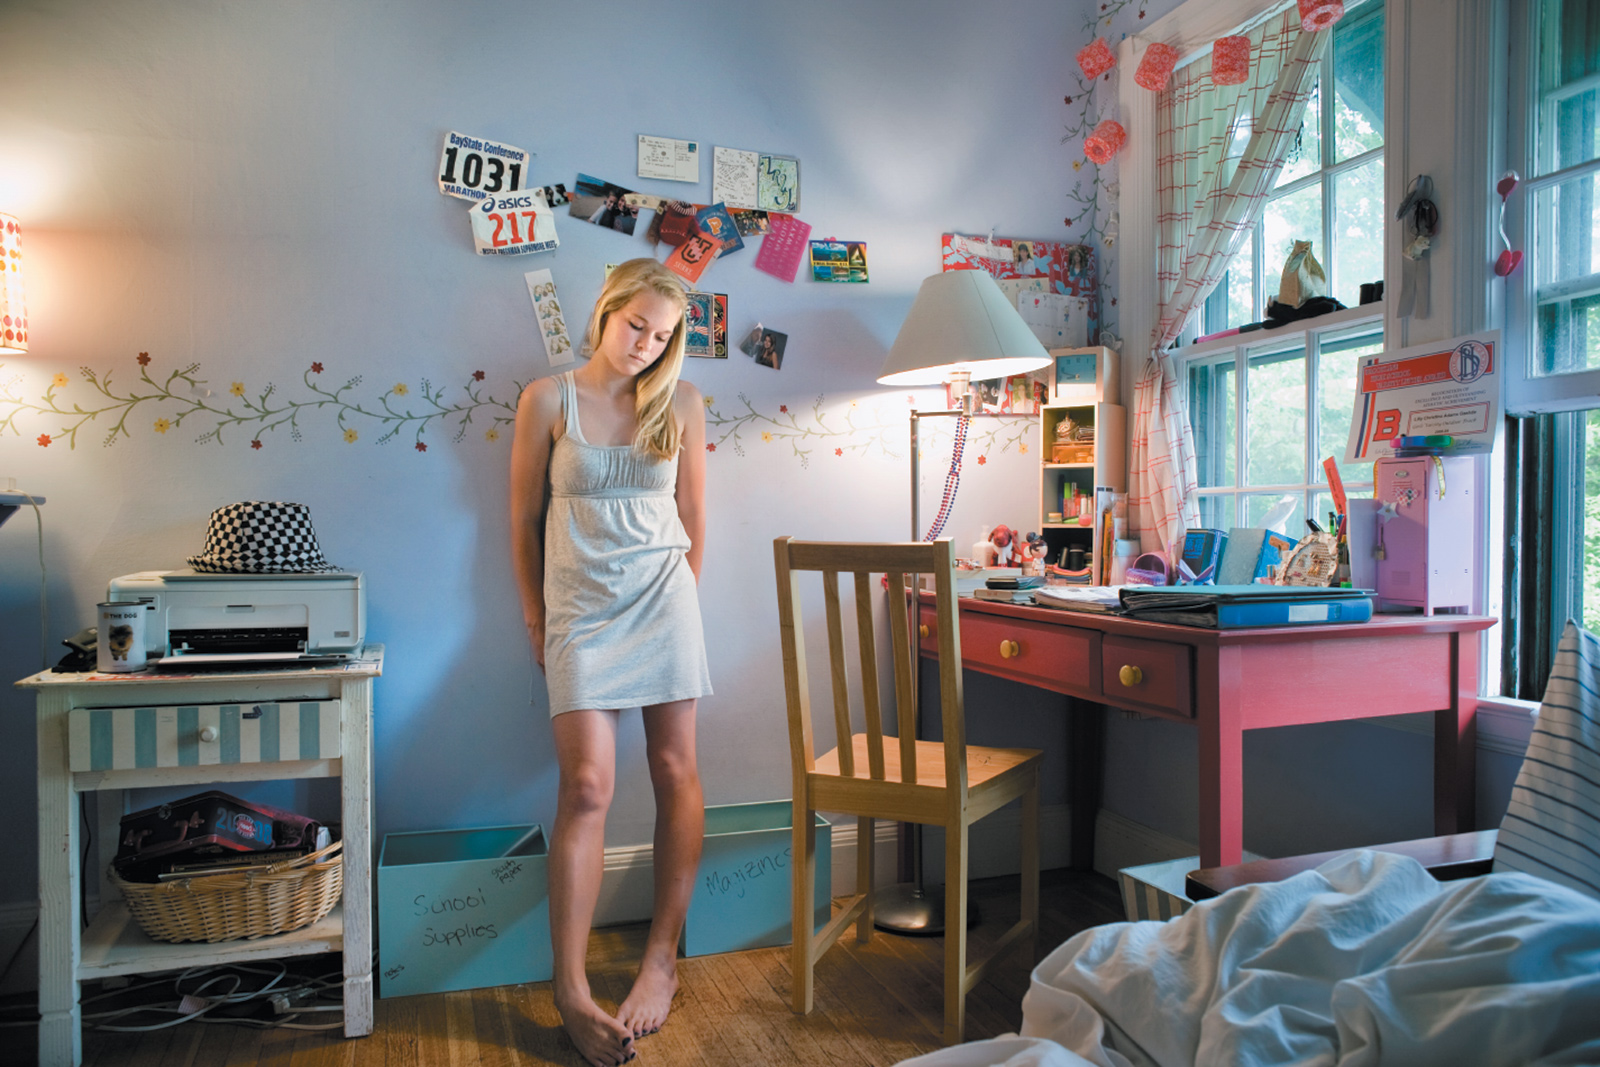 Lilly, Brookline, Massachusetts, 2009; from Rania Matar's A Girl and Her Room